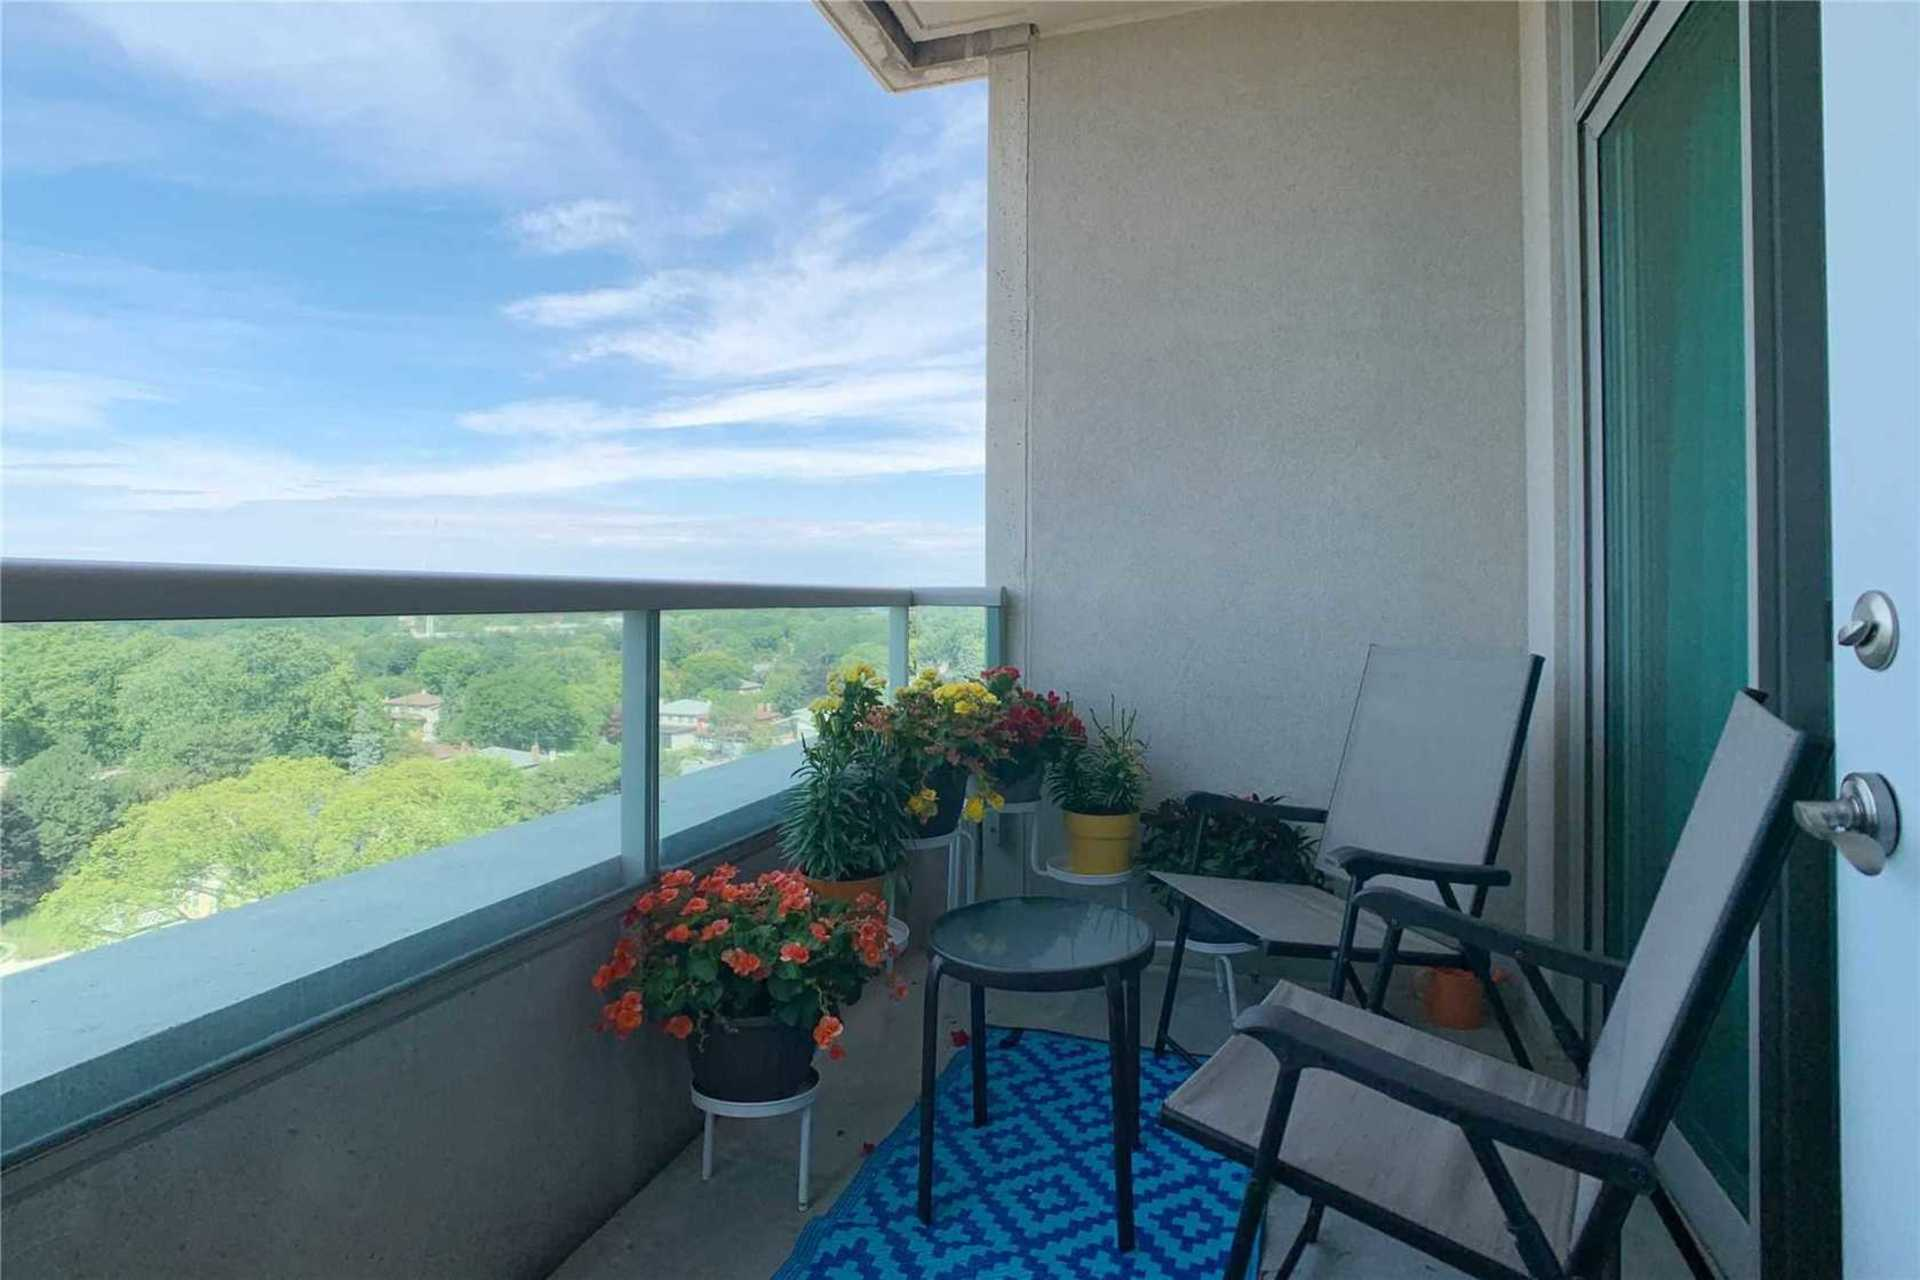 Balcony at 1209 - 10 Bloorview Place, Don Valley Village, Toronto